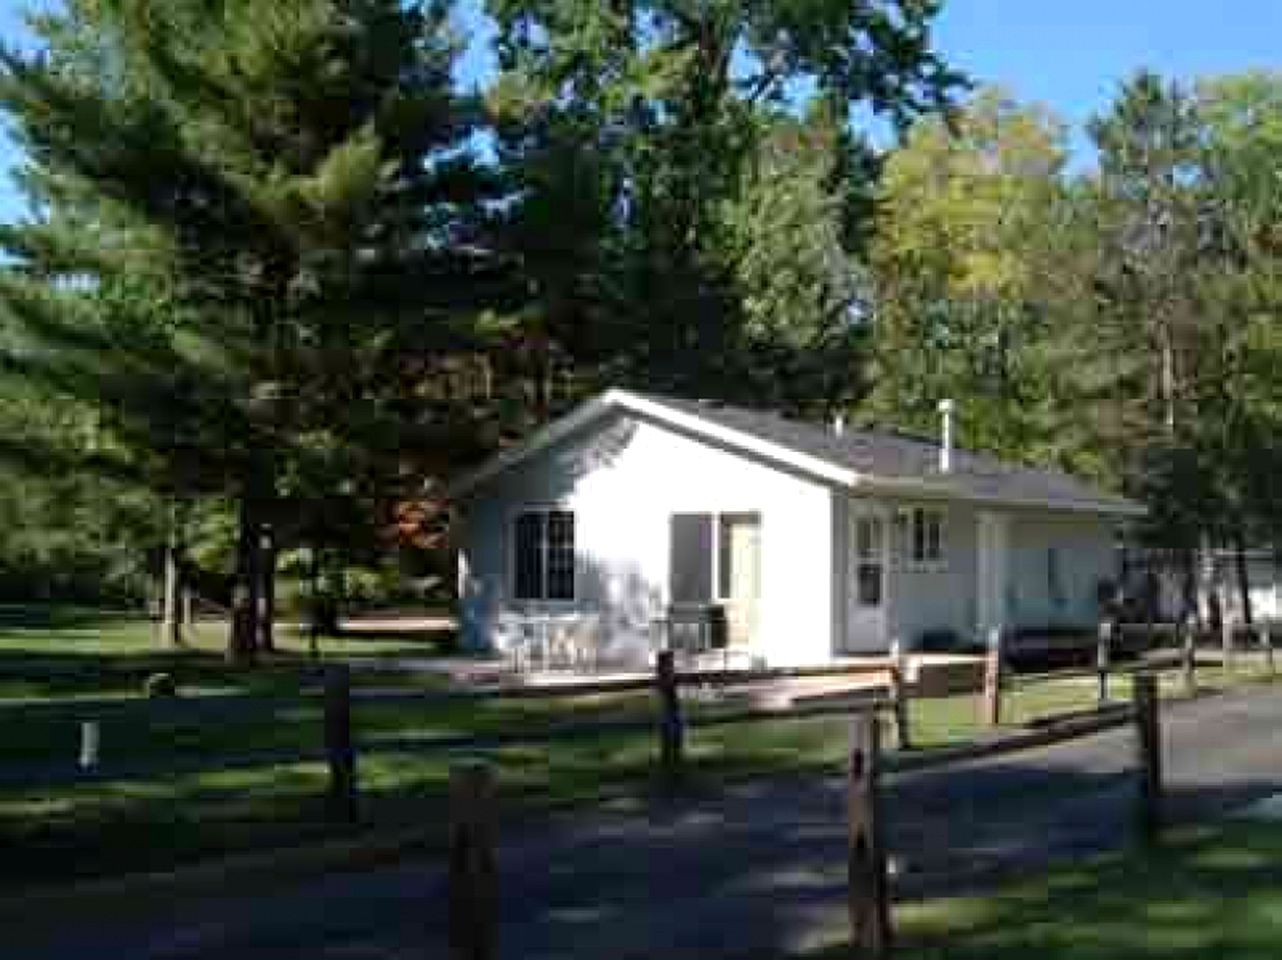 Cabins (St. Holcombe, Wisconsin, United States)